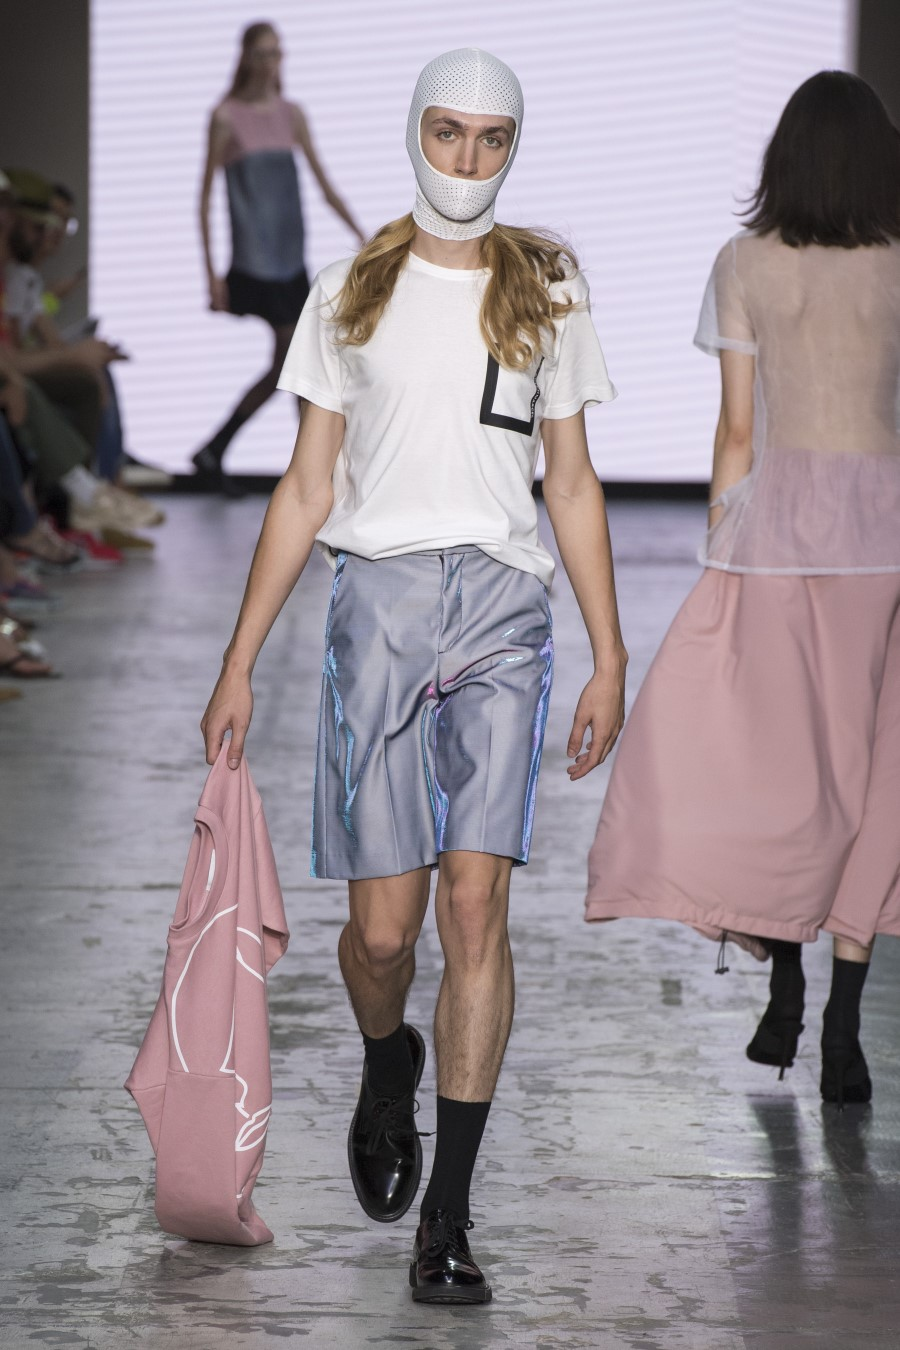 Edithmarcel - Printemps-Été 2020 - Milan Fashion Week